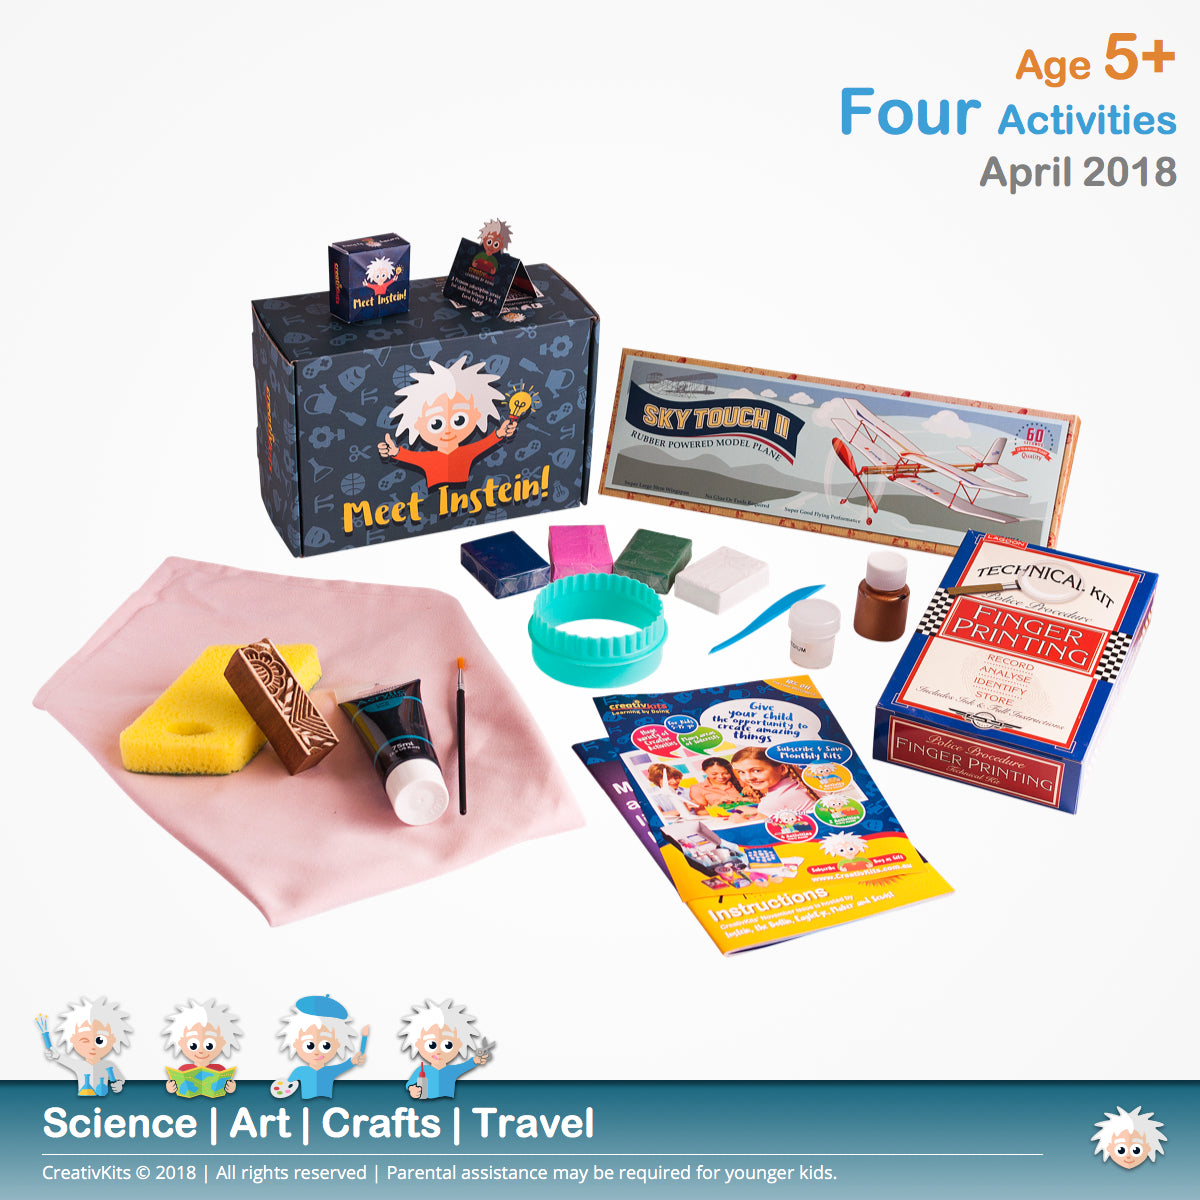 Block Cushions, Rbr Powered Plane, Marble Coasters & Fingerprint Analysis | April Plus Kit | Age 5+